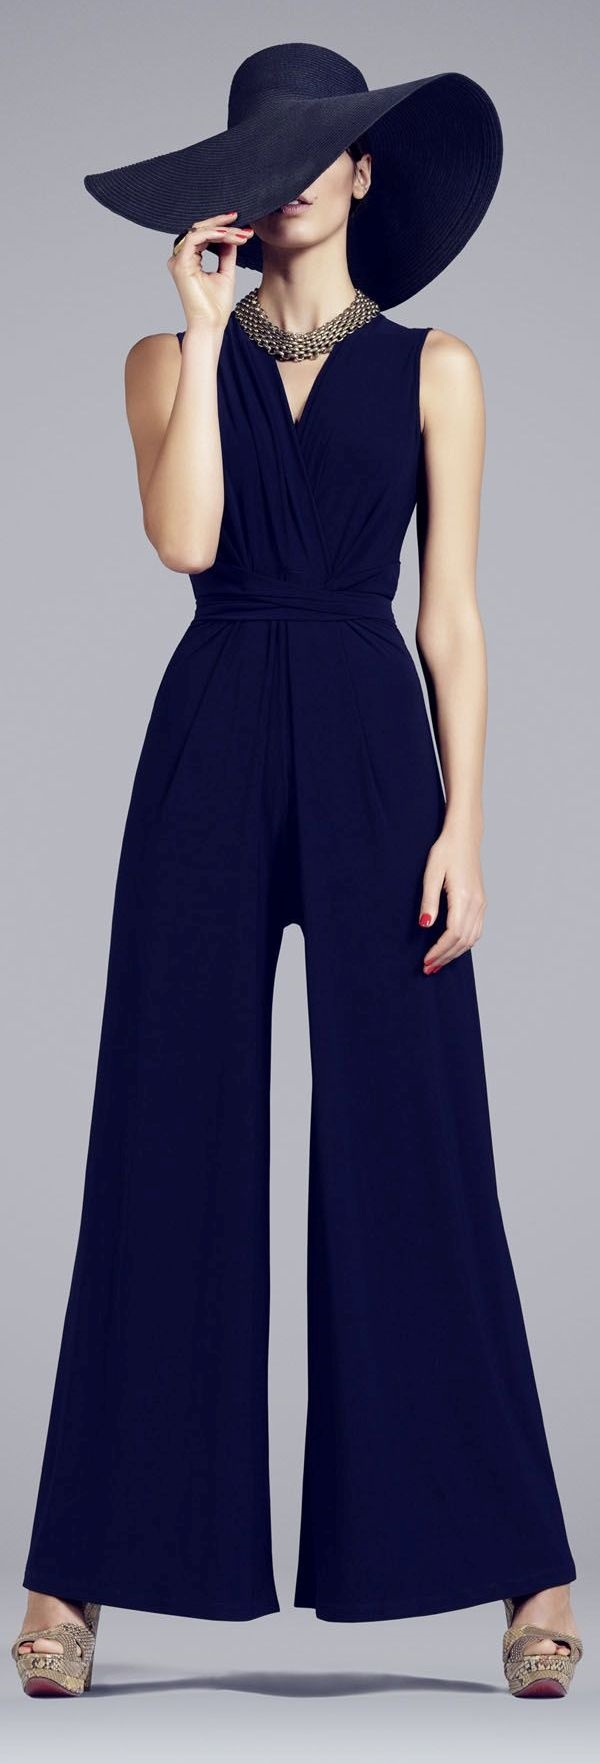 Hot Jumpsuit outfit ideas for Girls23